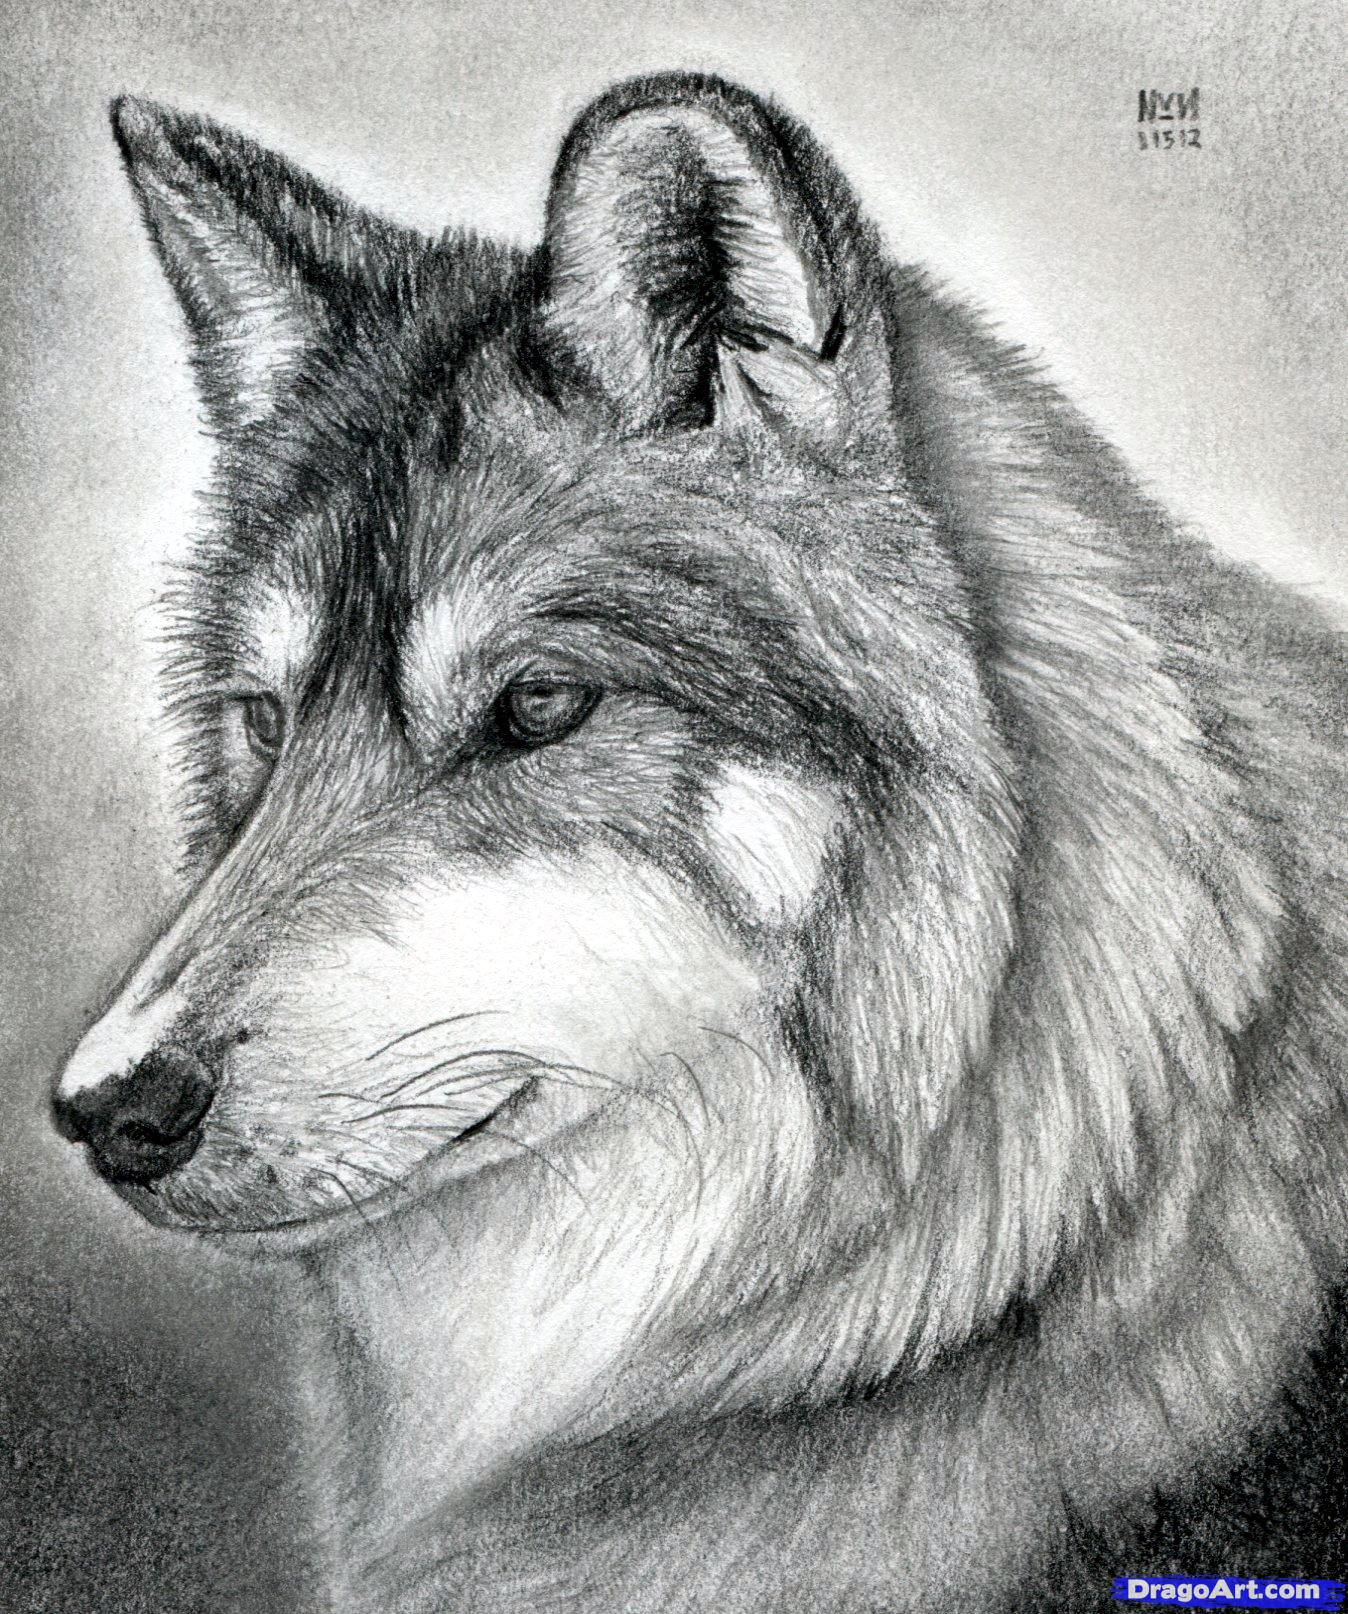 Drawn werewolf pencil drawing Wolf a wolf on realistic